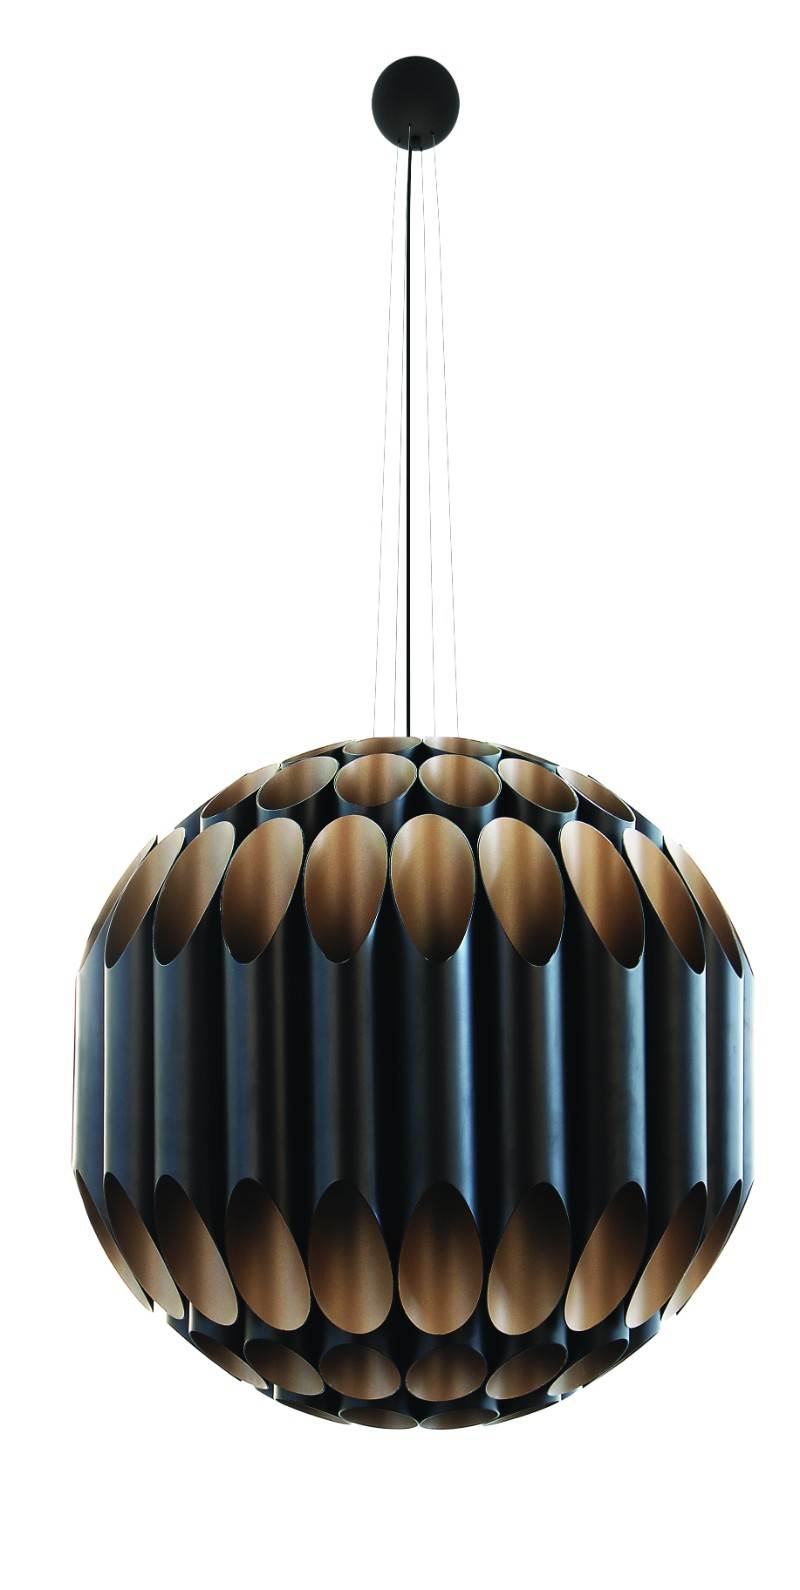 Trending Product A Funky Modern Chandelier For Your Dining Room Decor 4